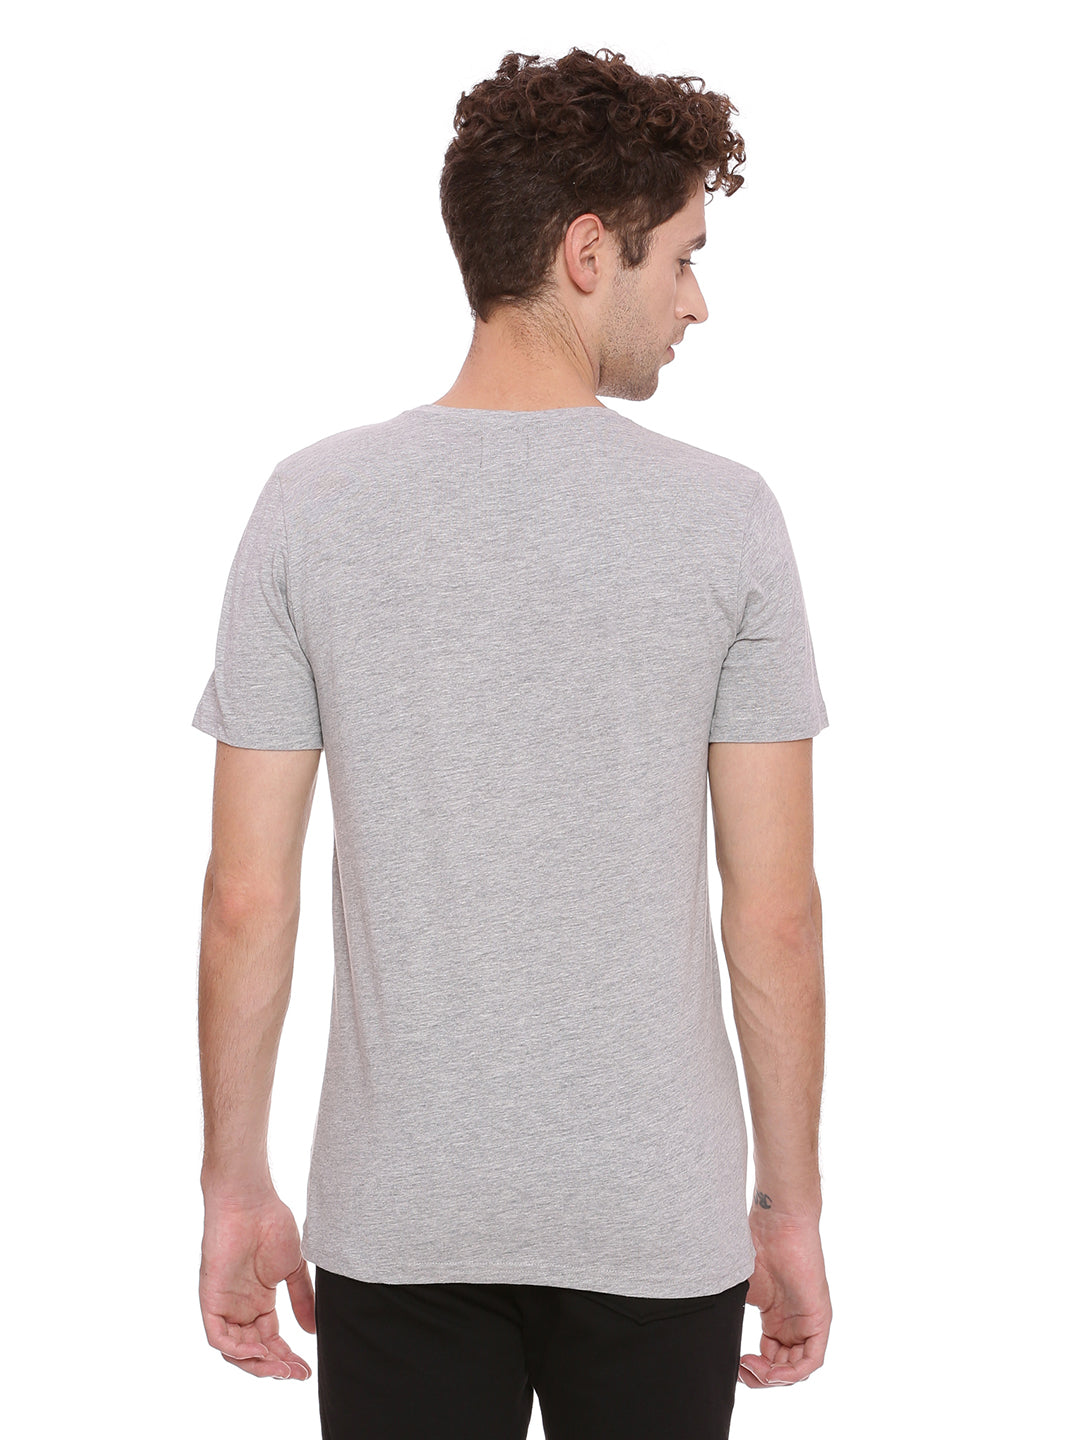 Round neck T-Shirt with print on front panel